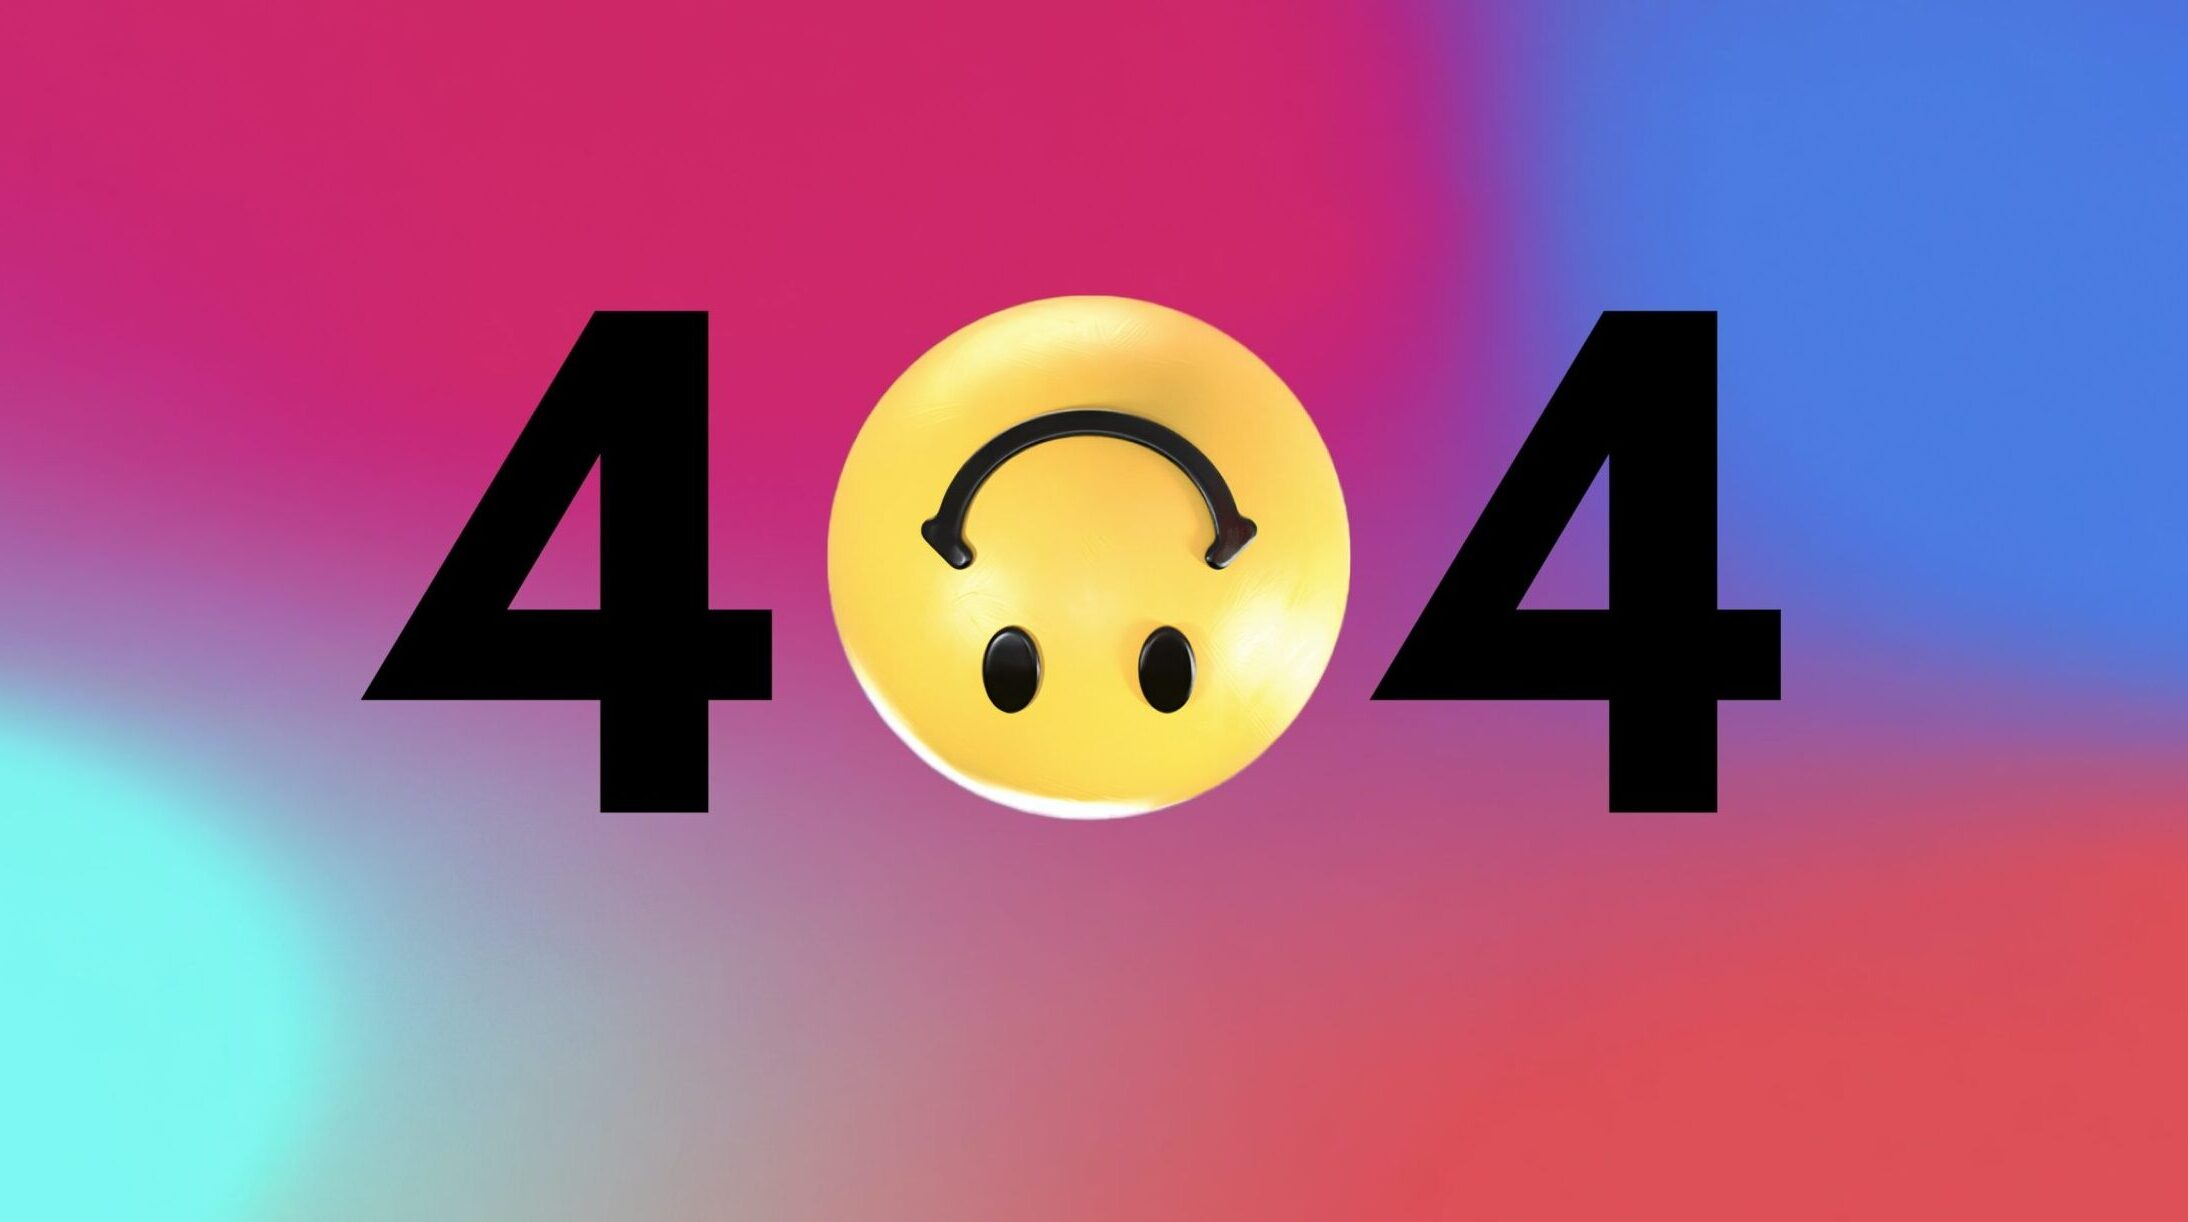 404 with an upside-down smiley for the 0